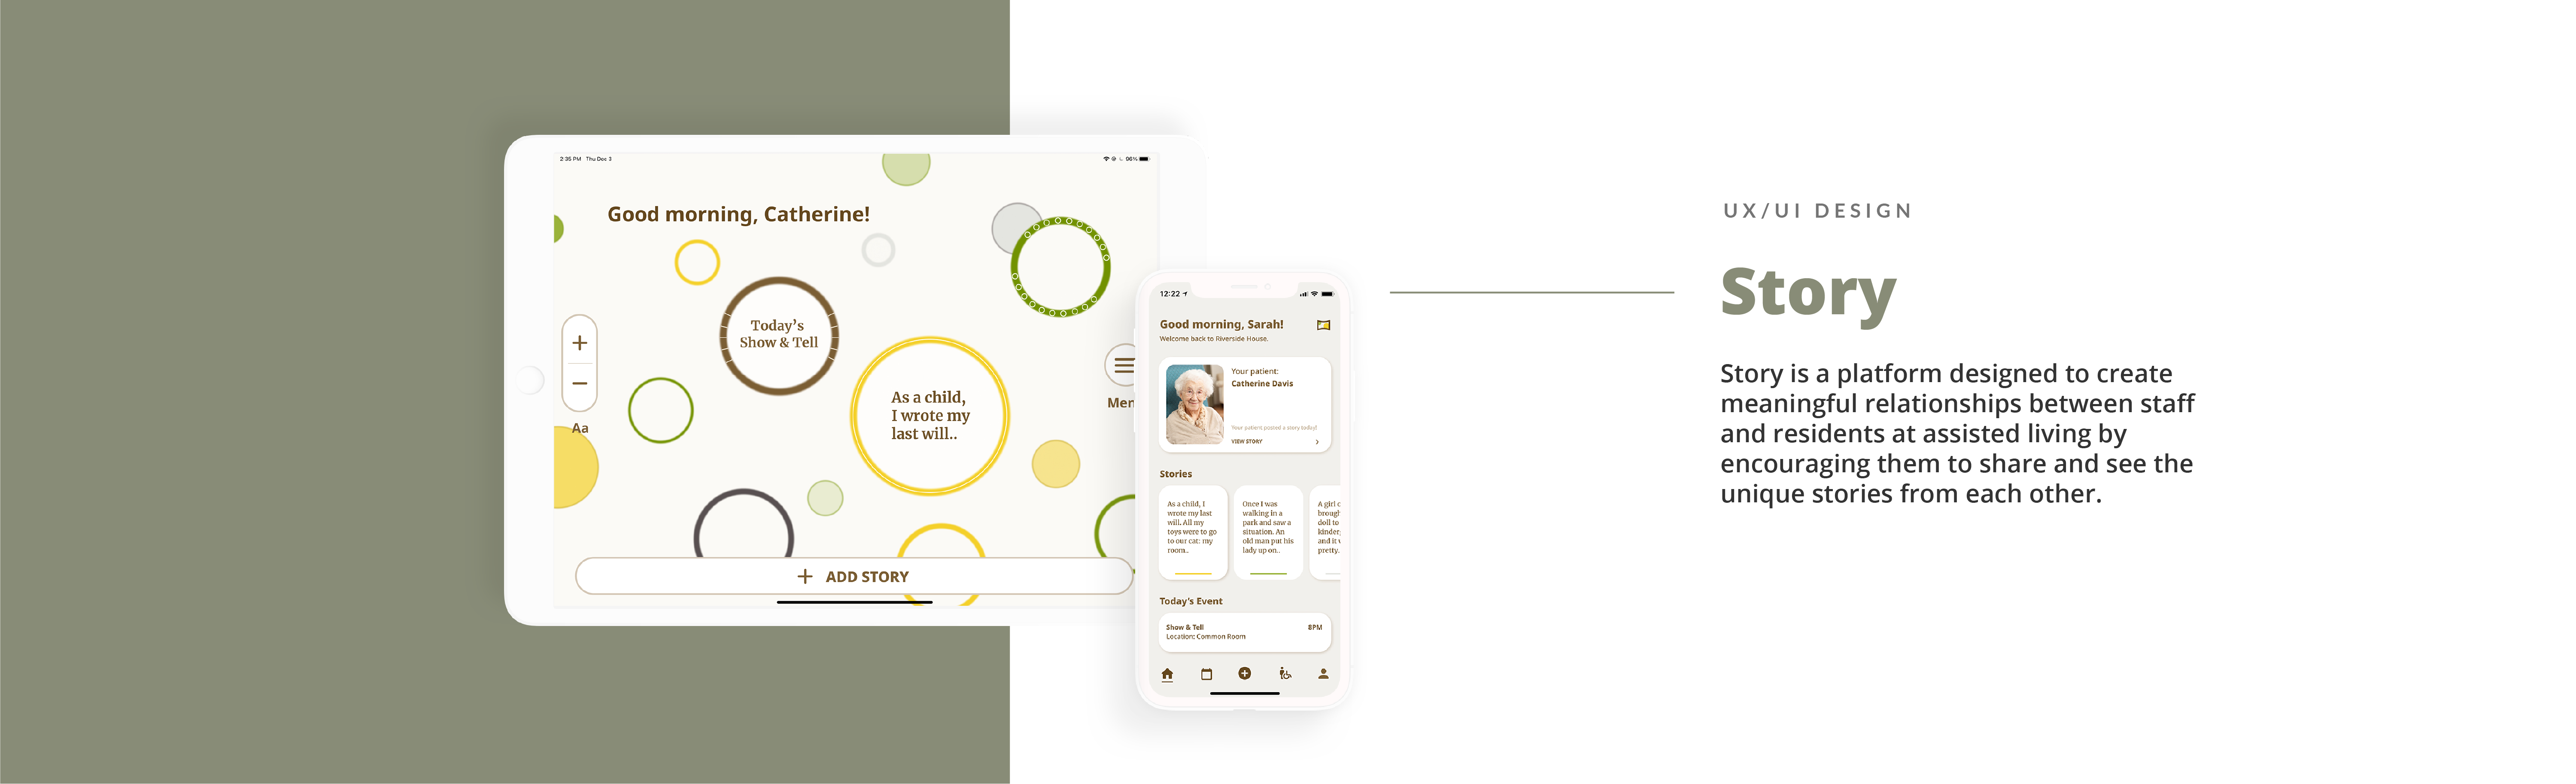 Story is a platform designed to create meaningful relationships between staff and residents at assisted living by encouraging them to share and see the unique stories from each other. Preview mockup screens of the project on the side.